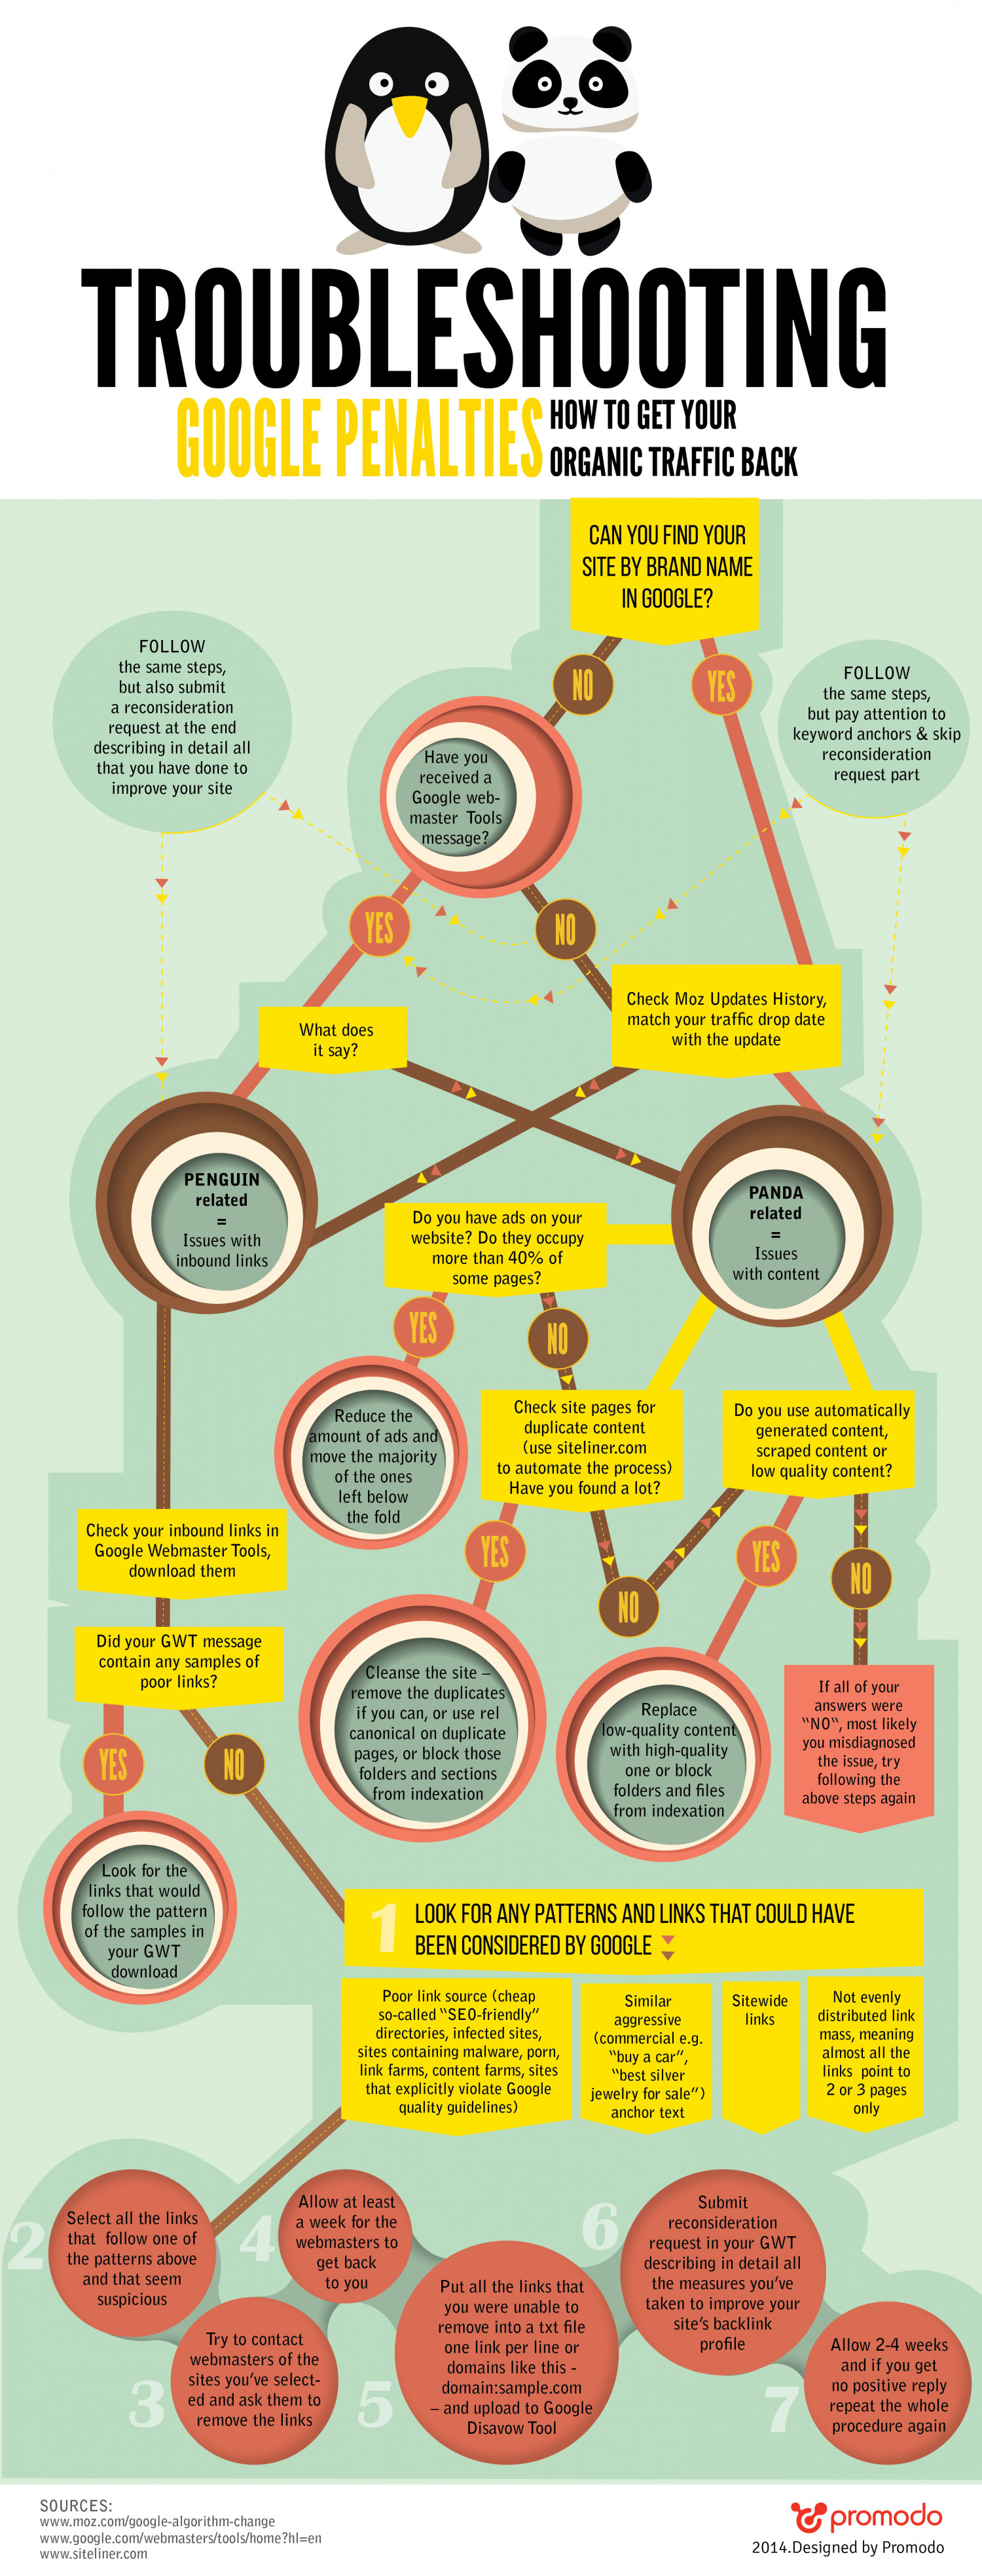 Infographic: Troubleshooting Google Penalties – How to Get Your Organic Traffic Back Infographic